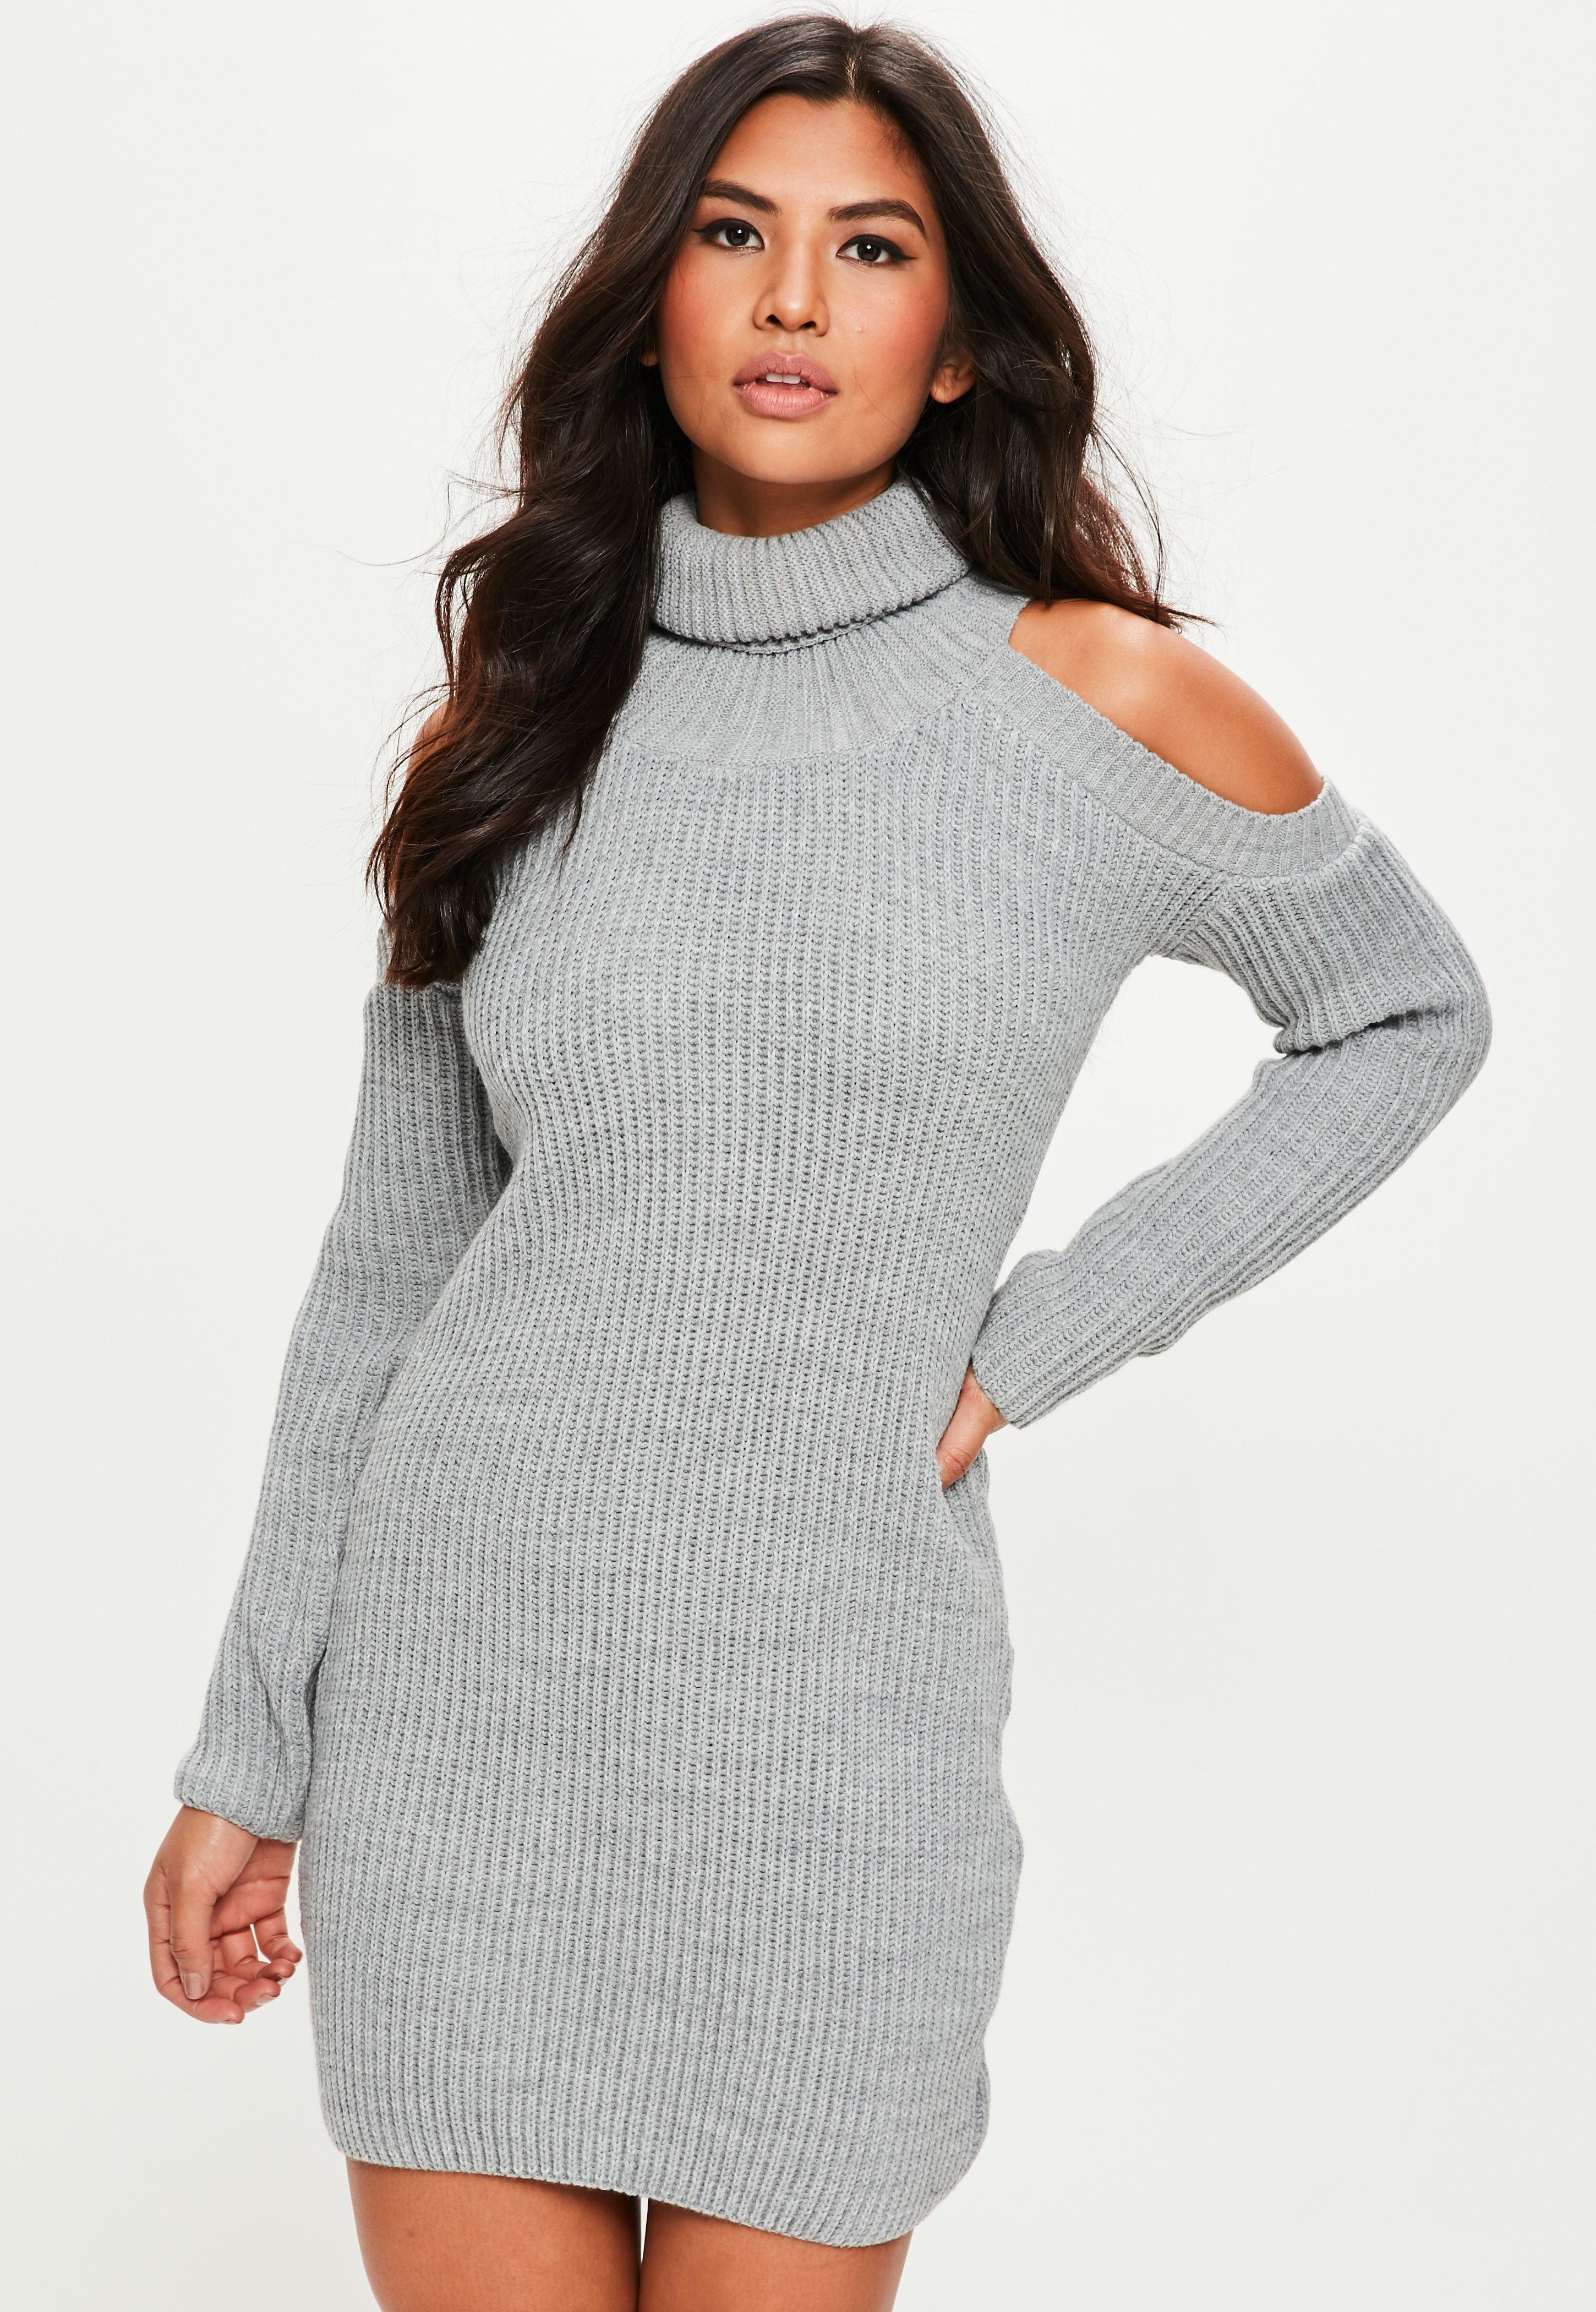 Sweater Dresses - Oversized Knitted Dresses | Missguided